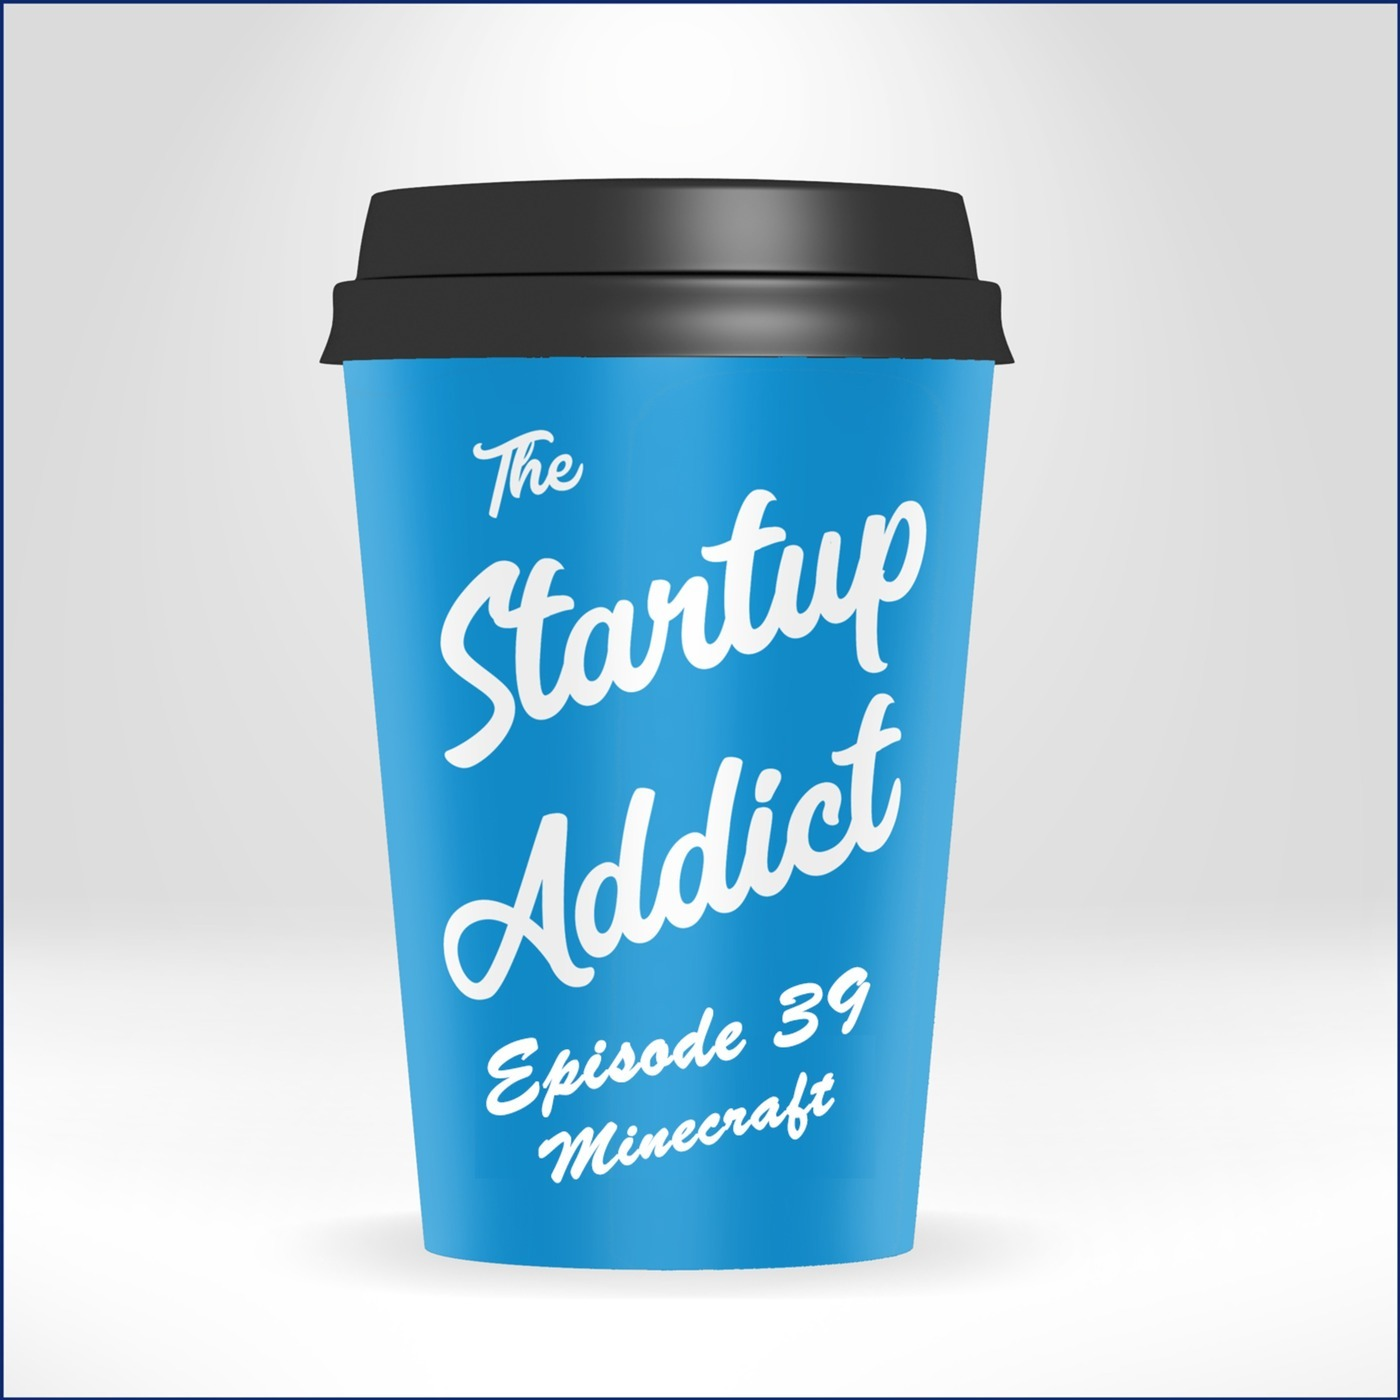 The Startup Addict Episode 39: Episode 39 - Minecraft and Business